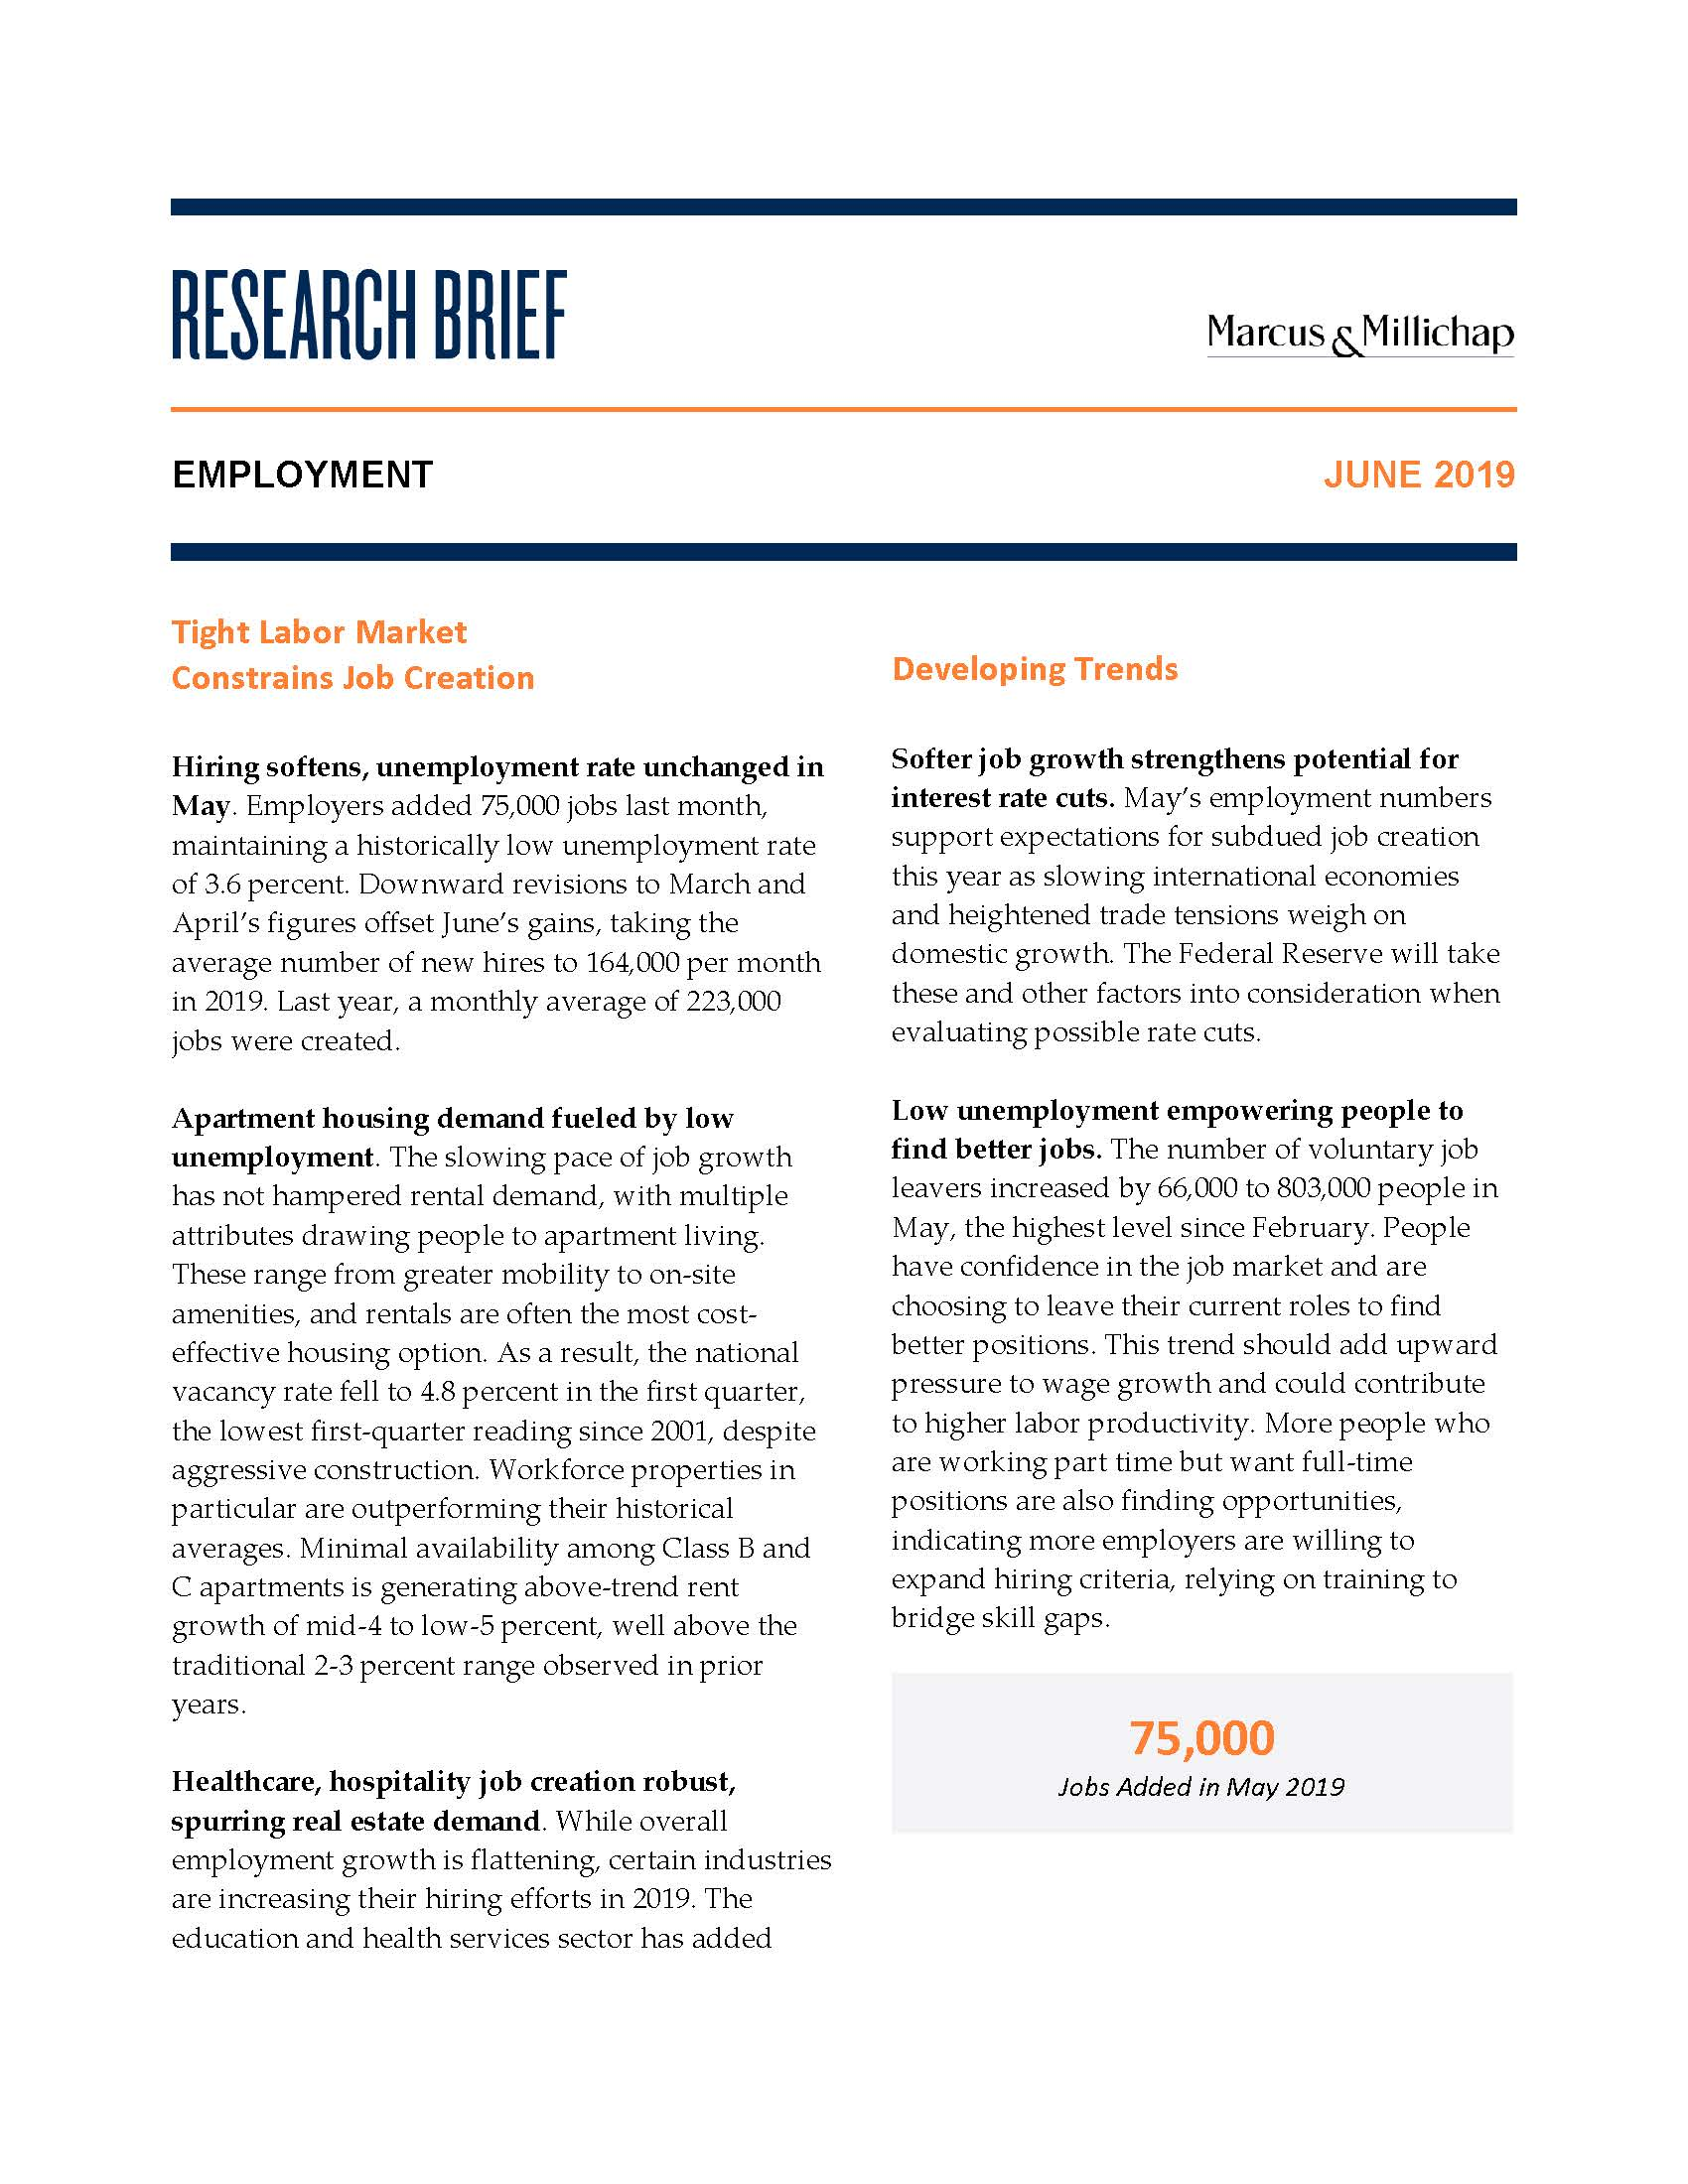 Research Brief - June 2019Employment - Hiring softens, unemployment rate unchanged in May. Employers added 75,000 jobs last month, maintaining a historically low unemployment rate of 3.6 percent. Downward revisions to March and April's figures offset June's gains, taking the average number of new hires to 164,000 per month in 2019. Last year, a monthly average of 223,000 jobs were created.